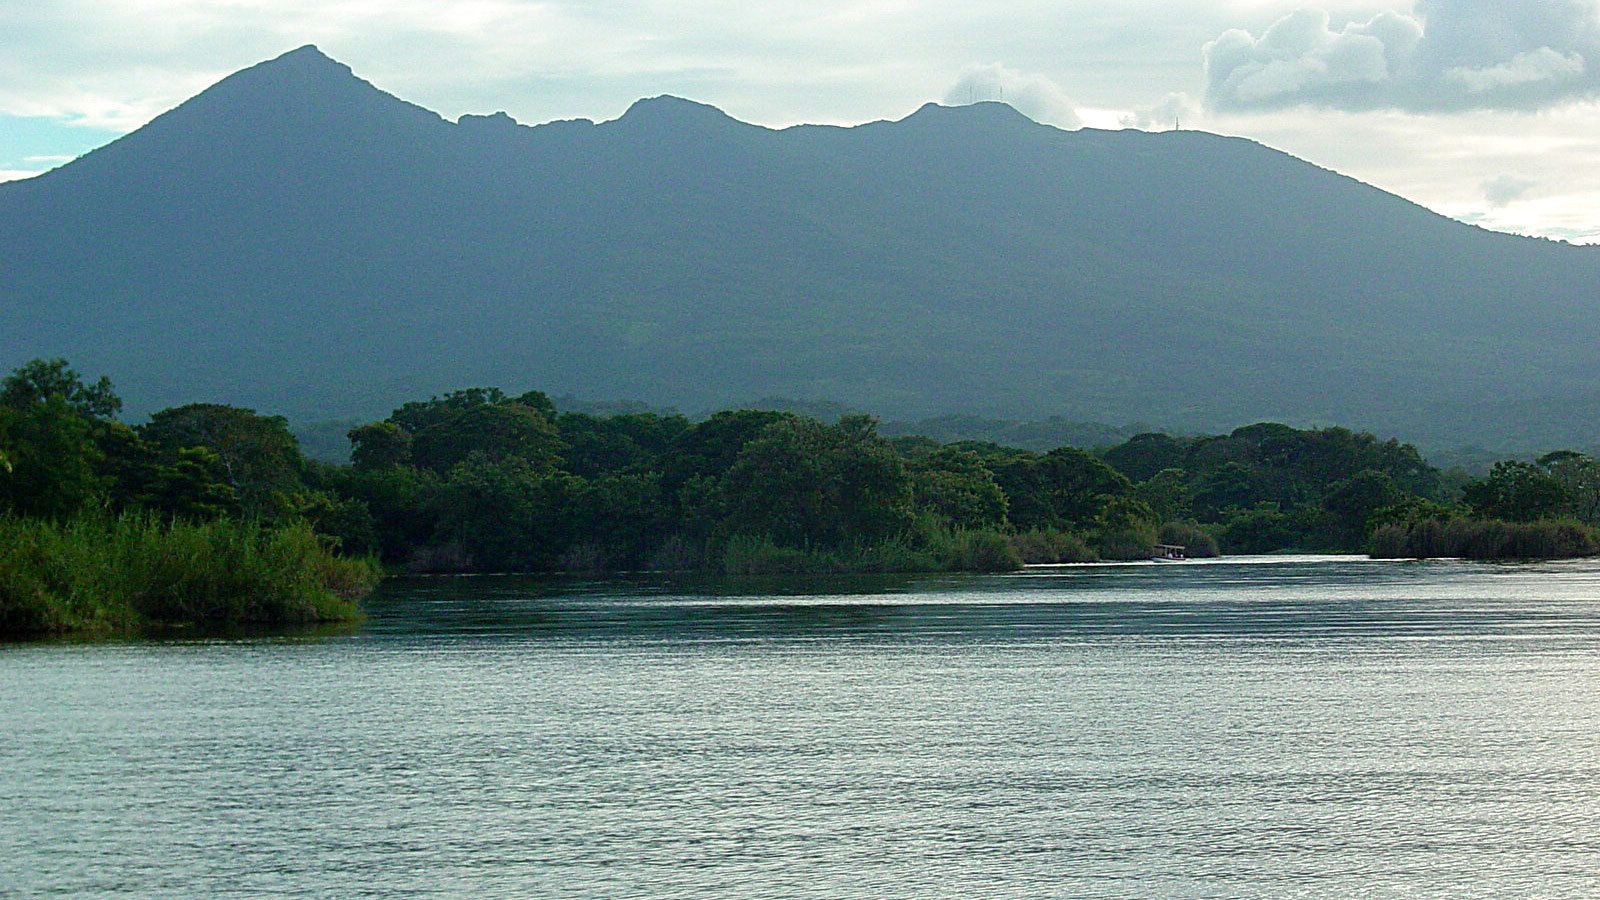 View over the river and volcano in background in Nicaragua